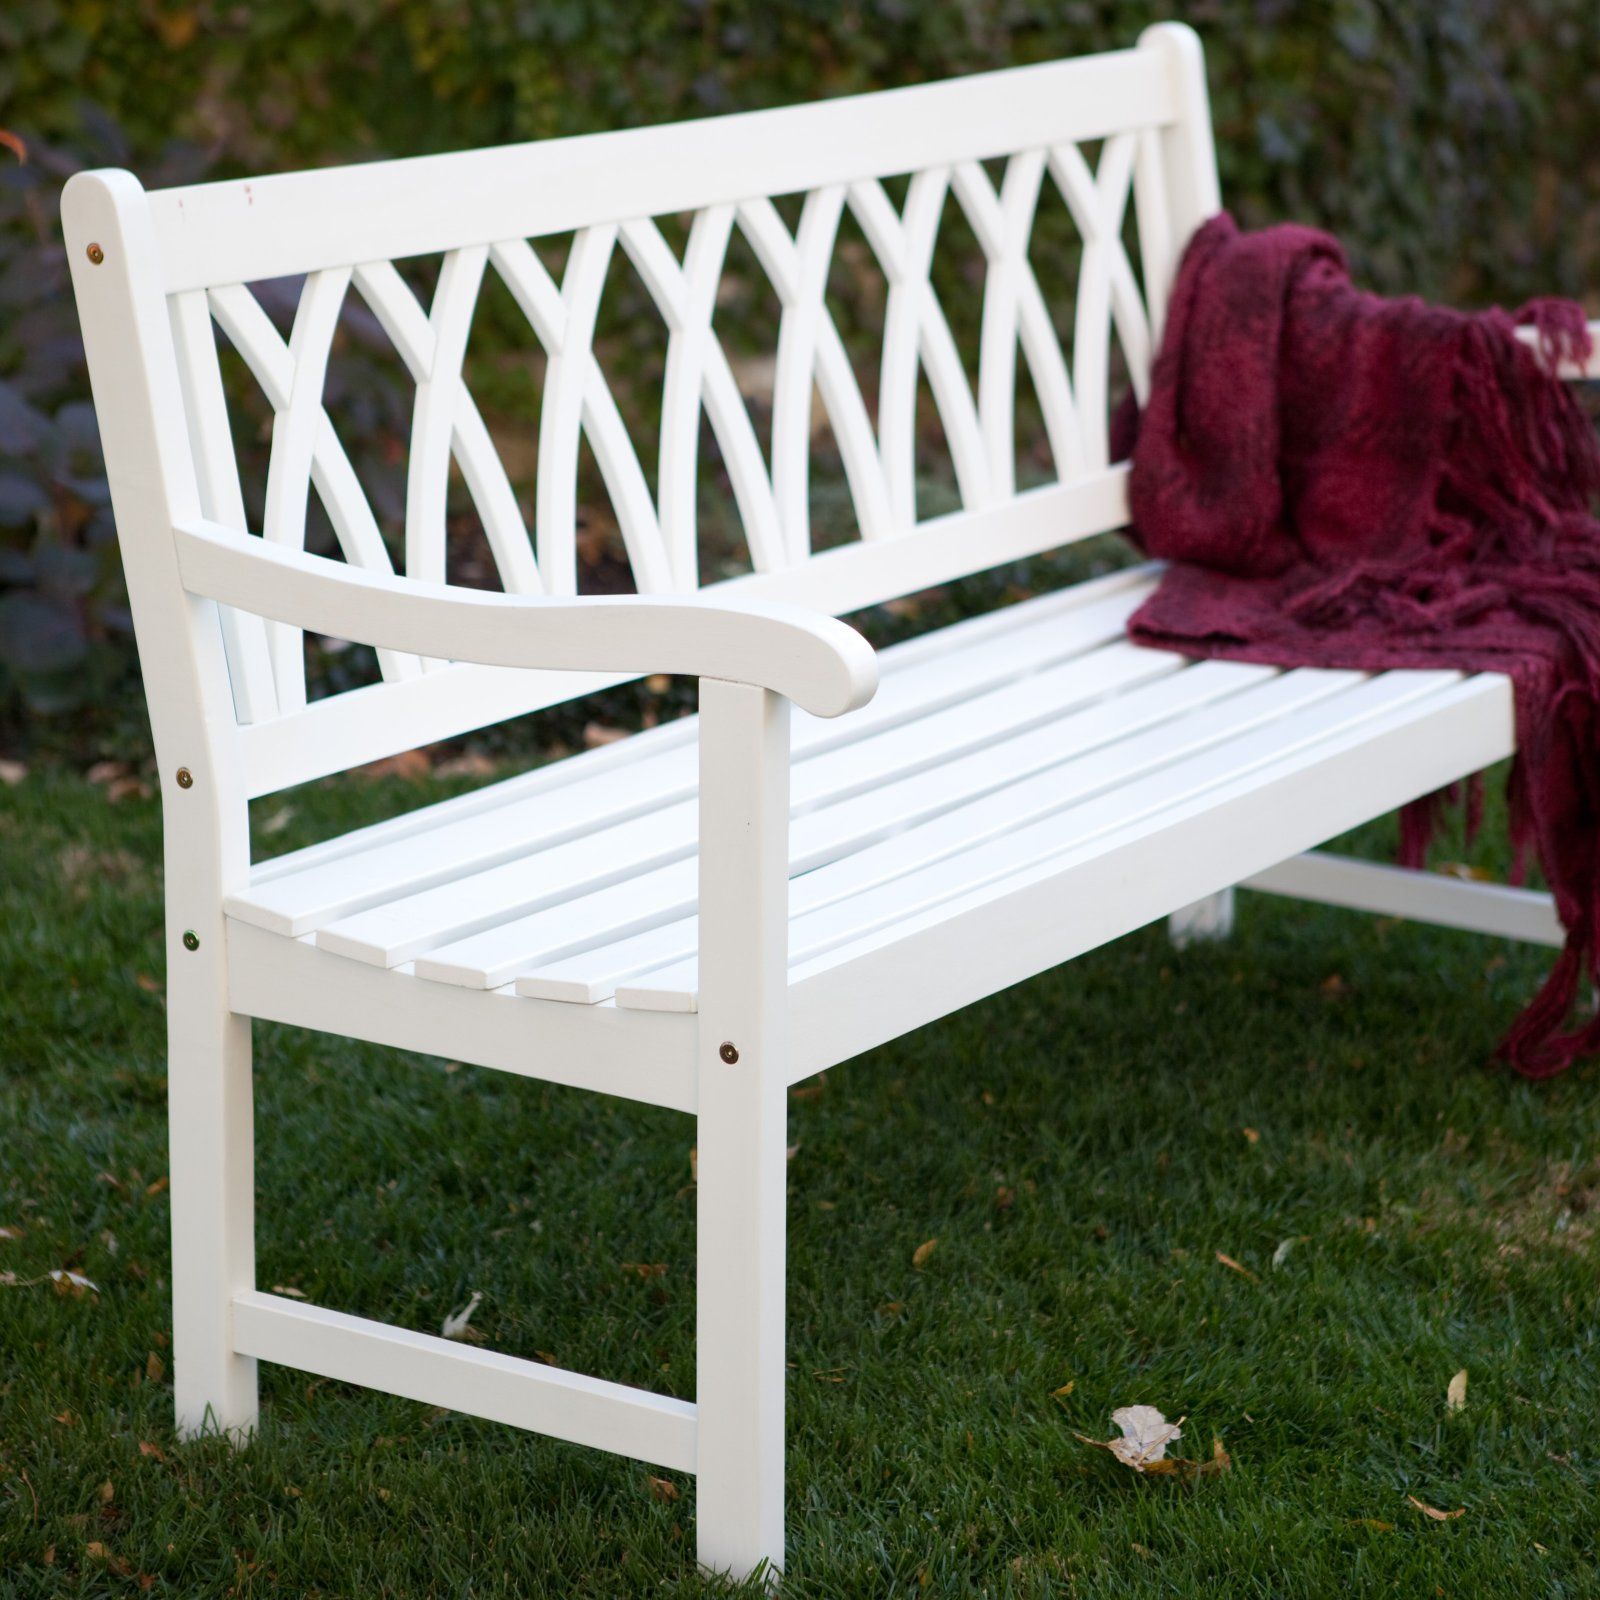 Surprising Cunningham 5 Ft Painted Wood Garden Bench White New Evergreenethics Interior Chair Design Evergreenethicsorg